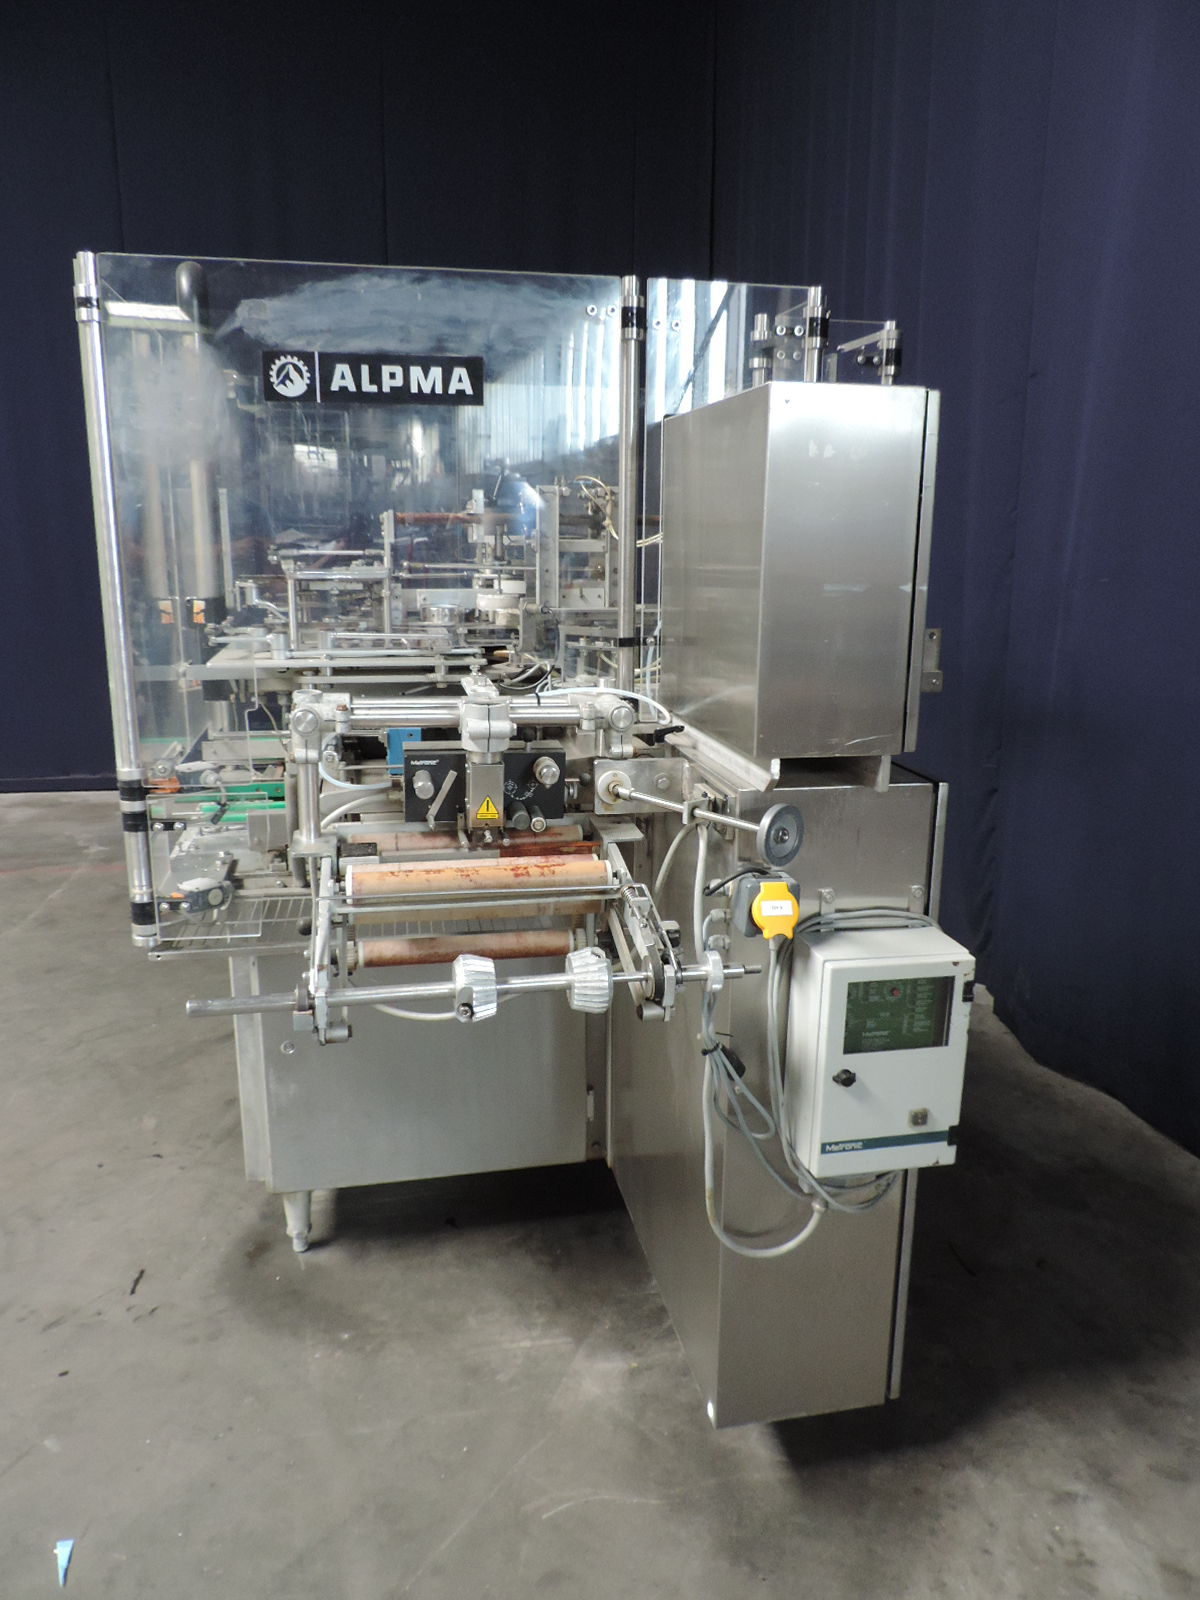 Alpma V-64/AV Cheese equipment